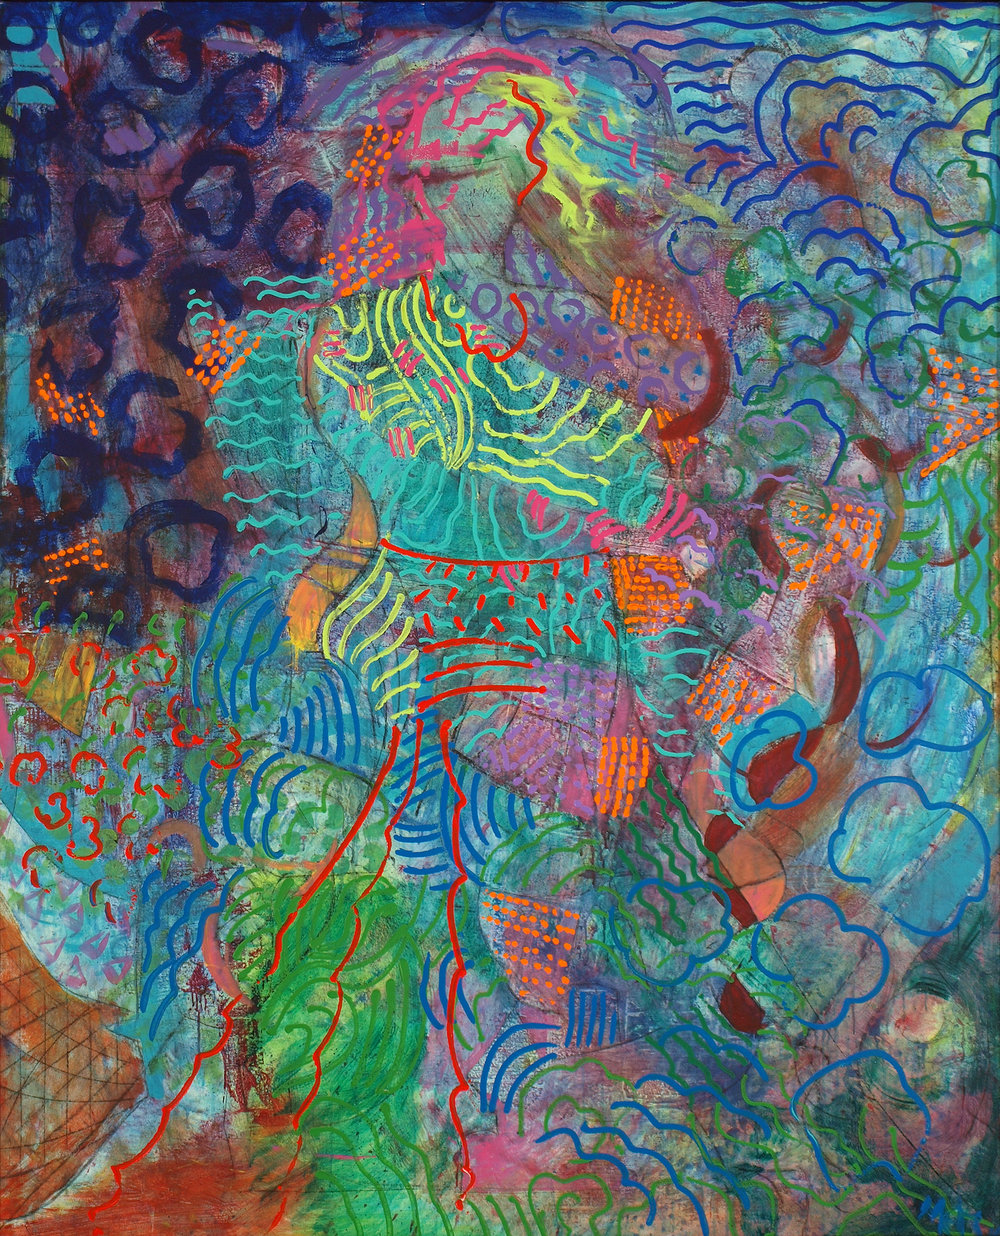 Mermaid (Haiku Series), 2005, 62 x 77 inches, Acrylic on canvas